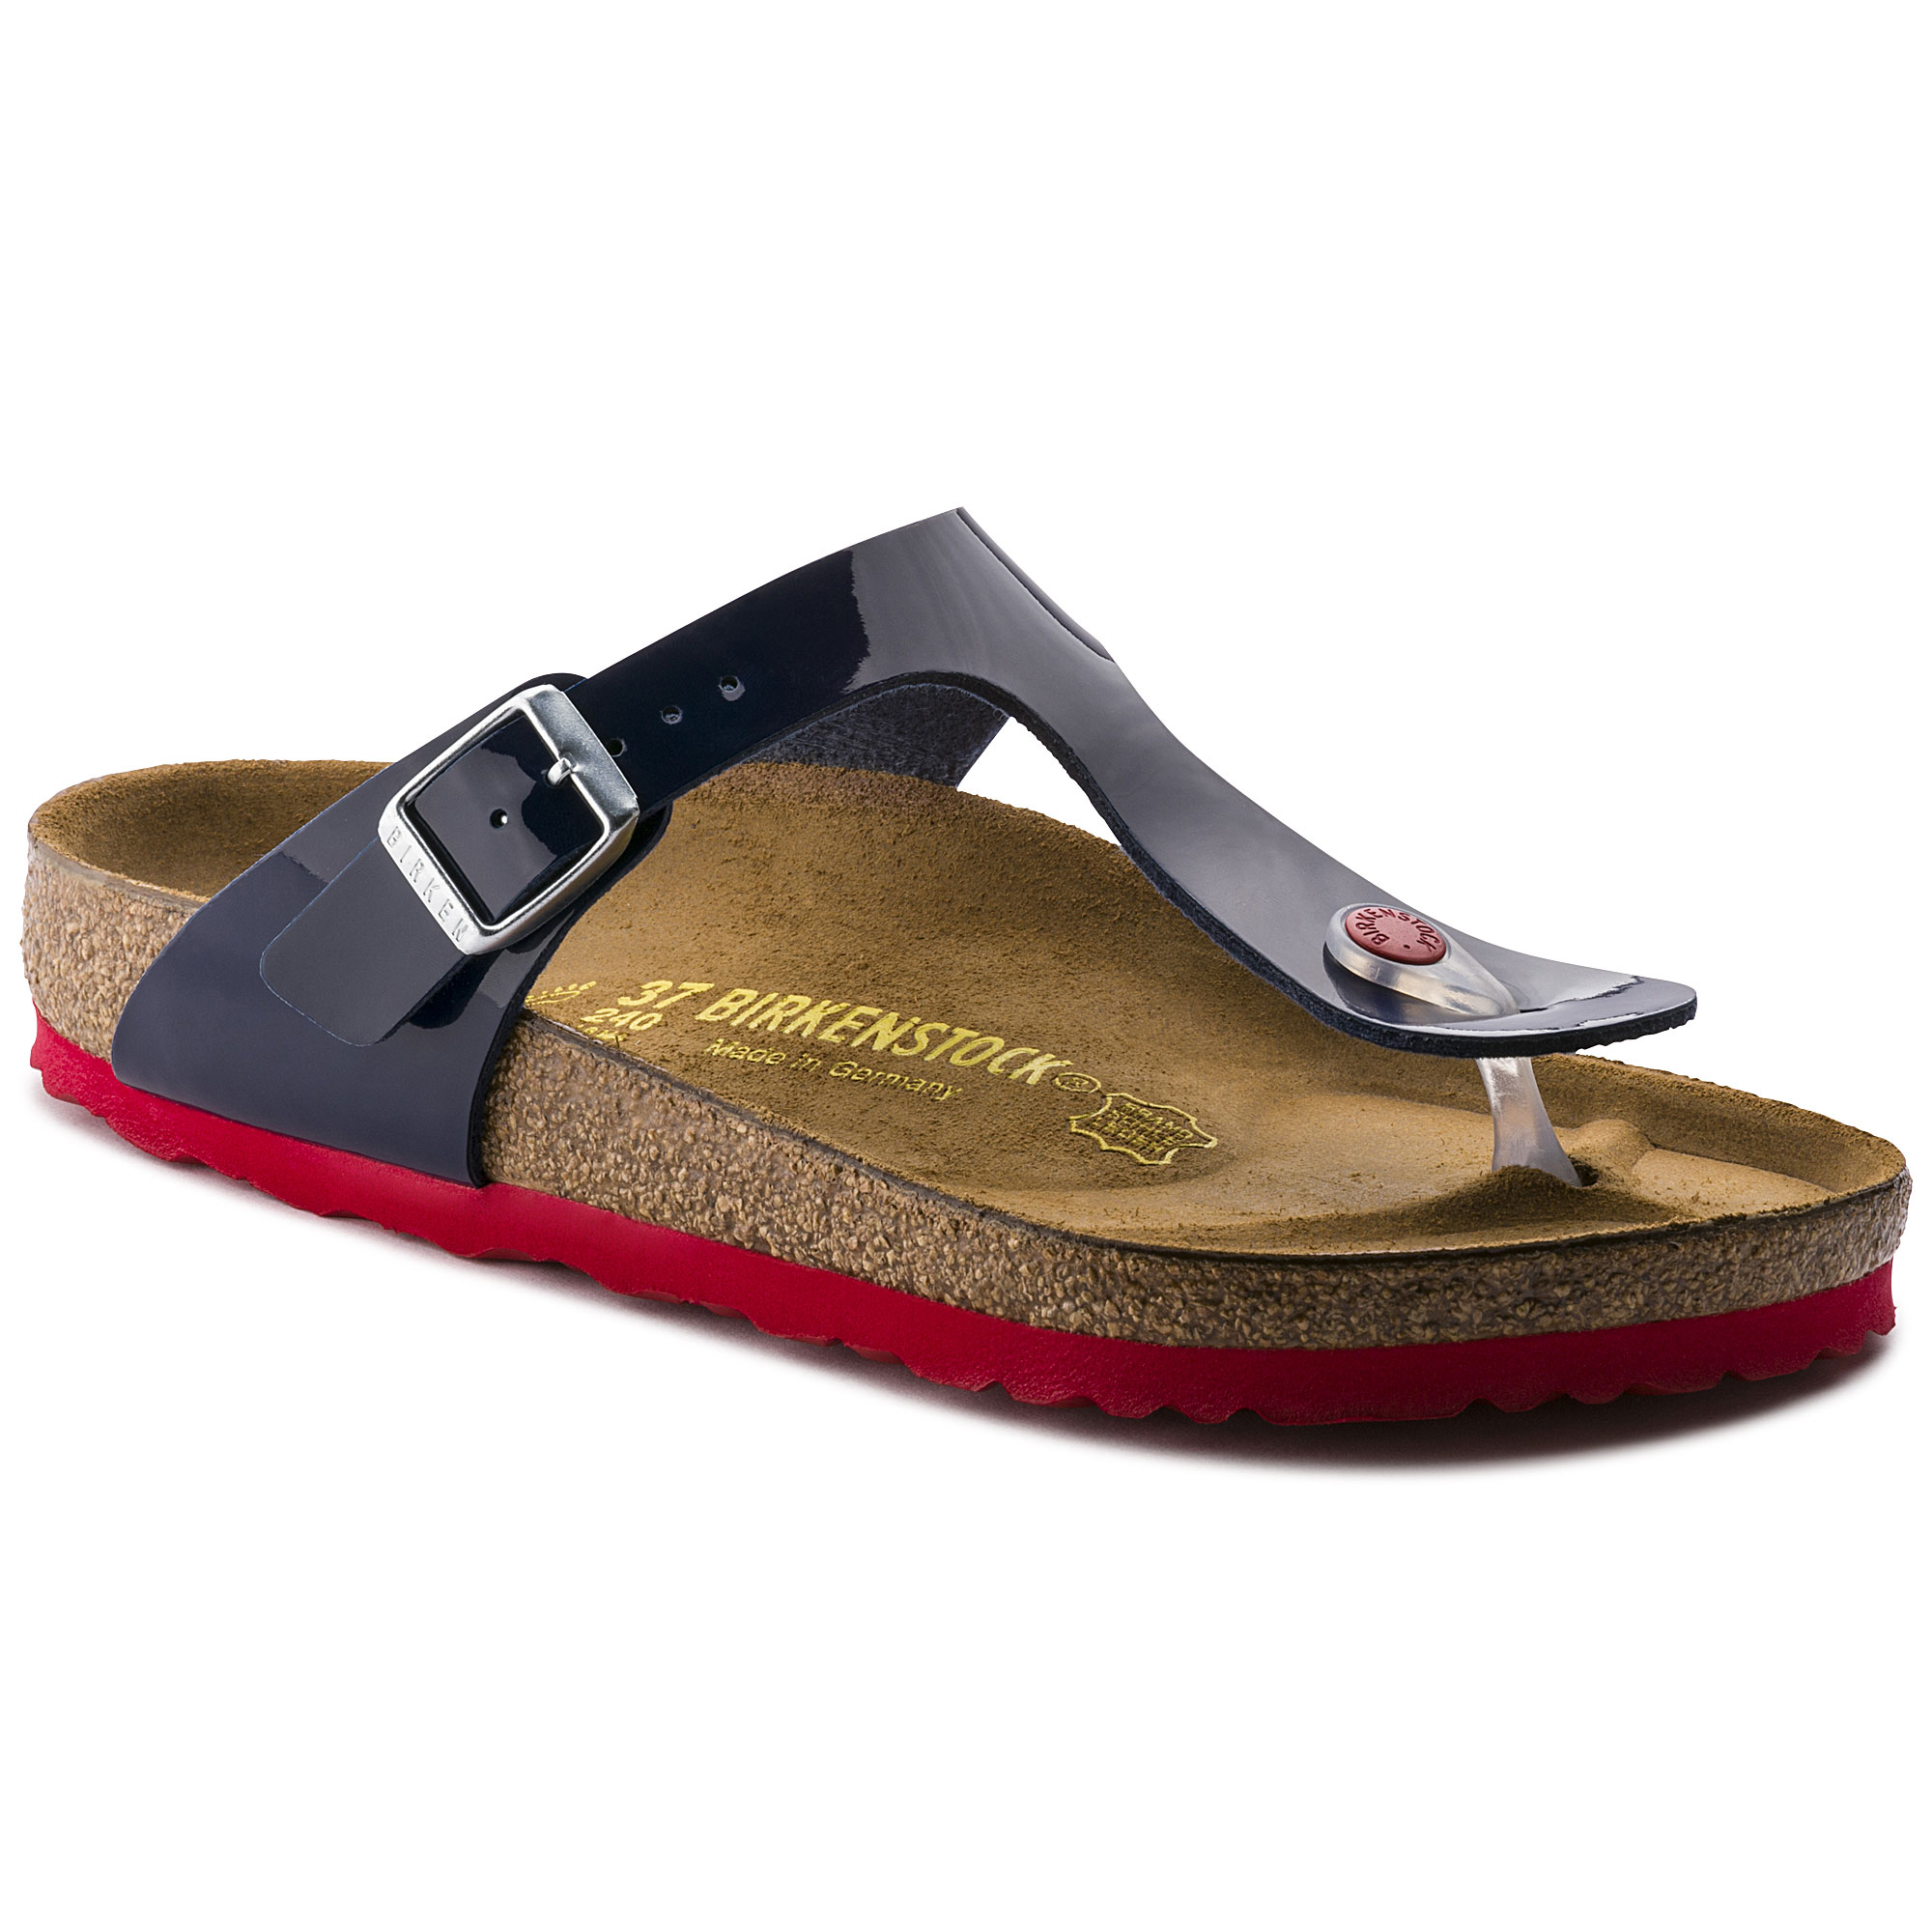 NEW Birkenstock Cairo Red Patent Thong Sandals Womens 9 EUR